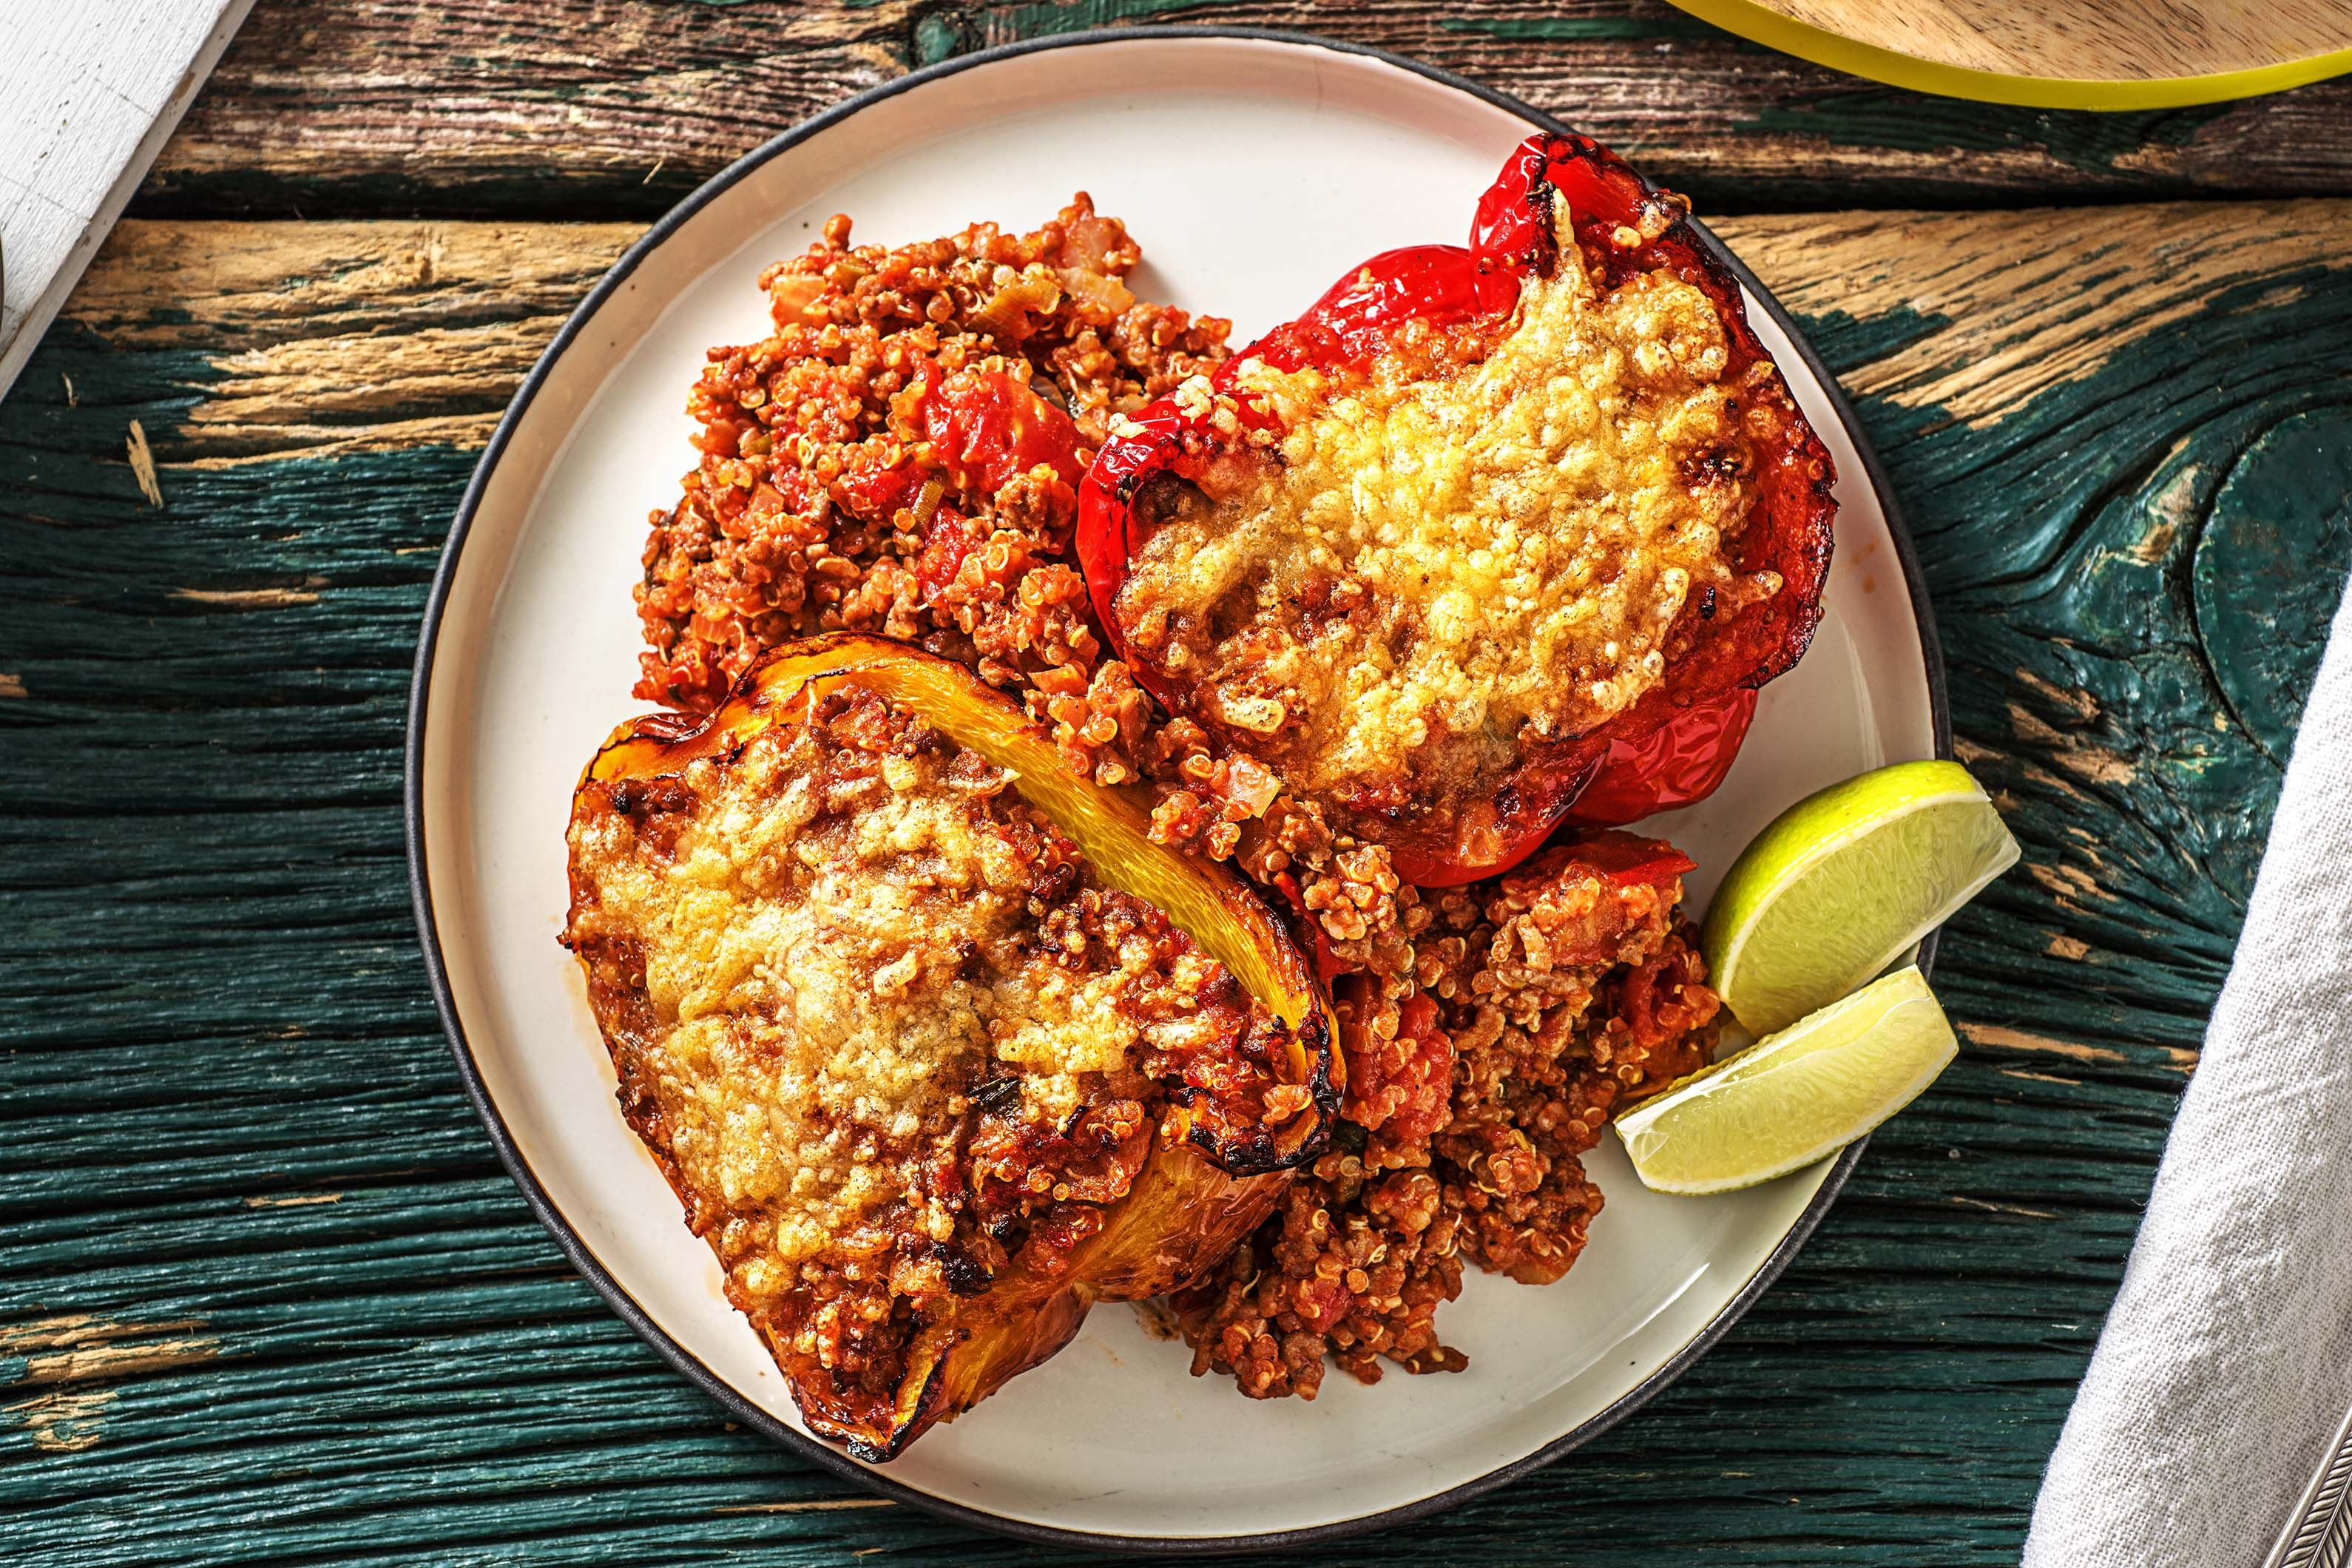 Southwestern Stuffed Peppers From Hellofresh I D Substitute Meatless Ground Beef To Make It Vegetarian Stuffed Peppers Beef Recipes Quinoa Stuffed Peppers